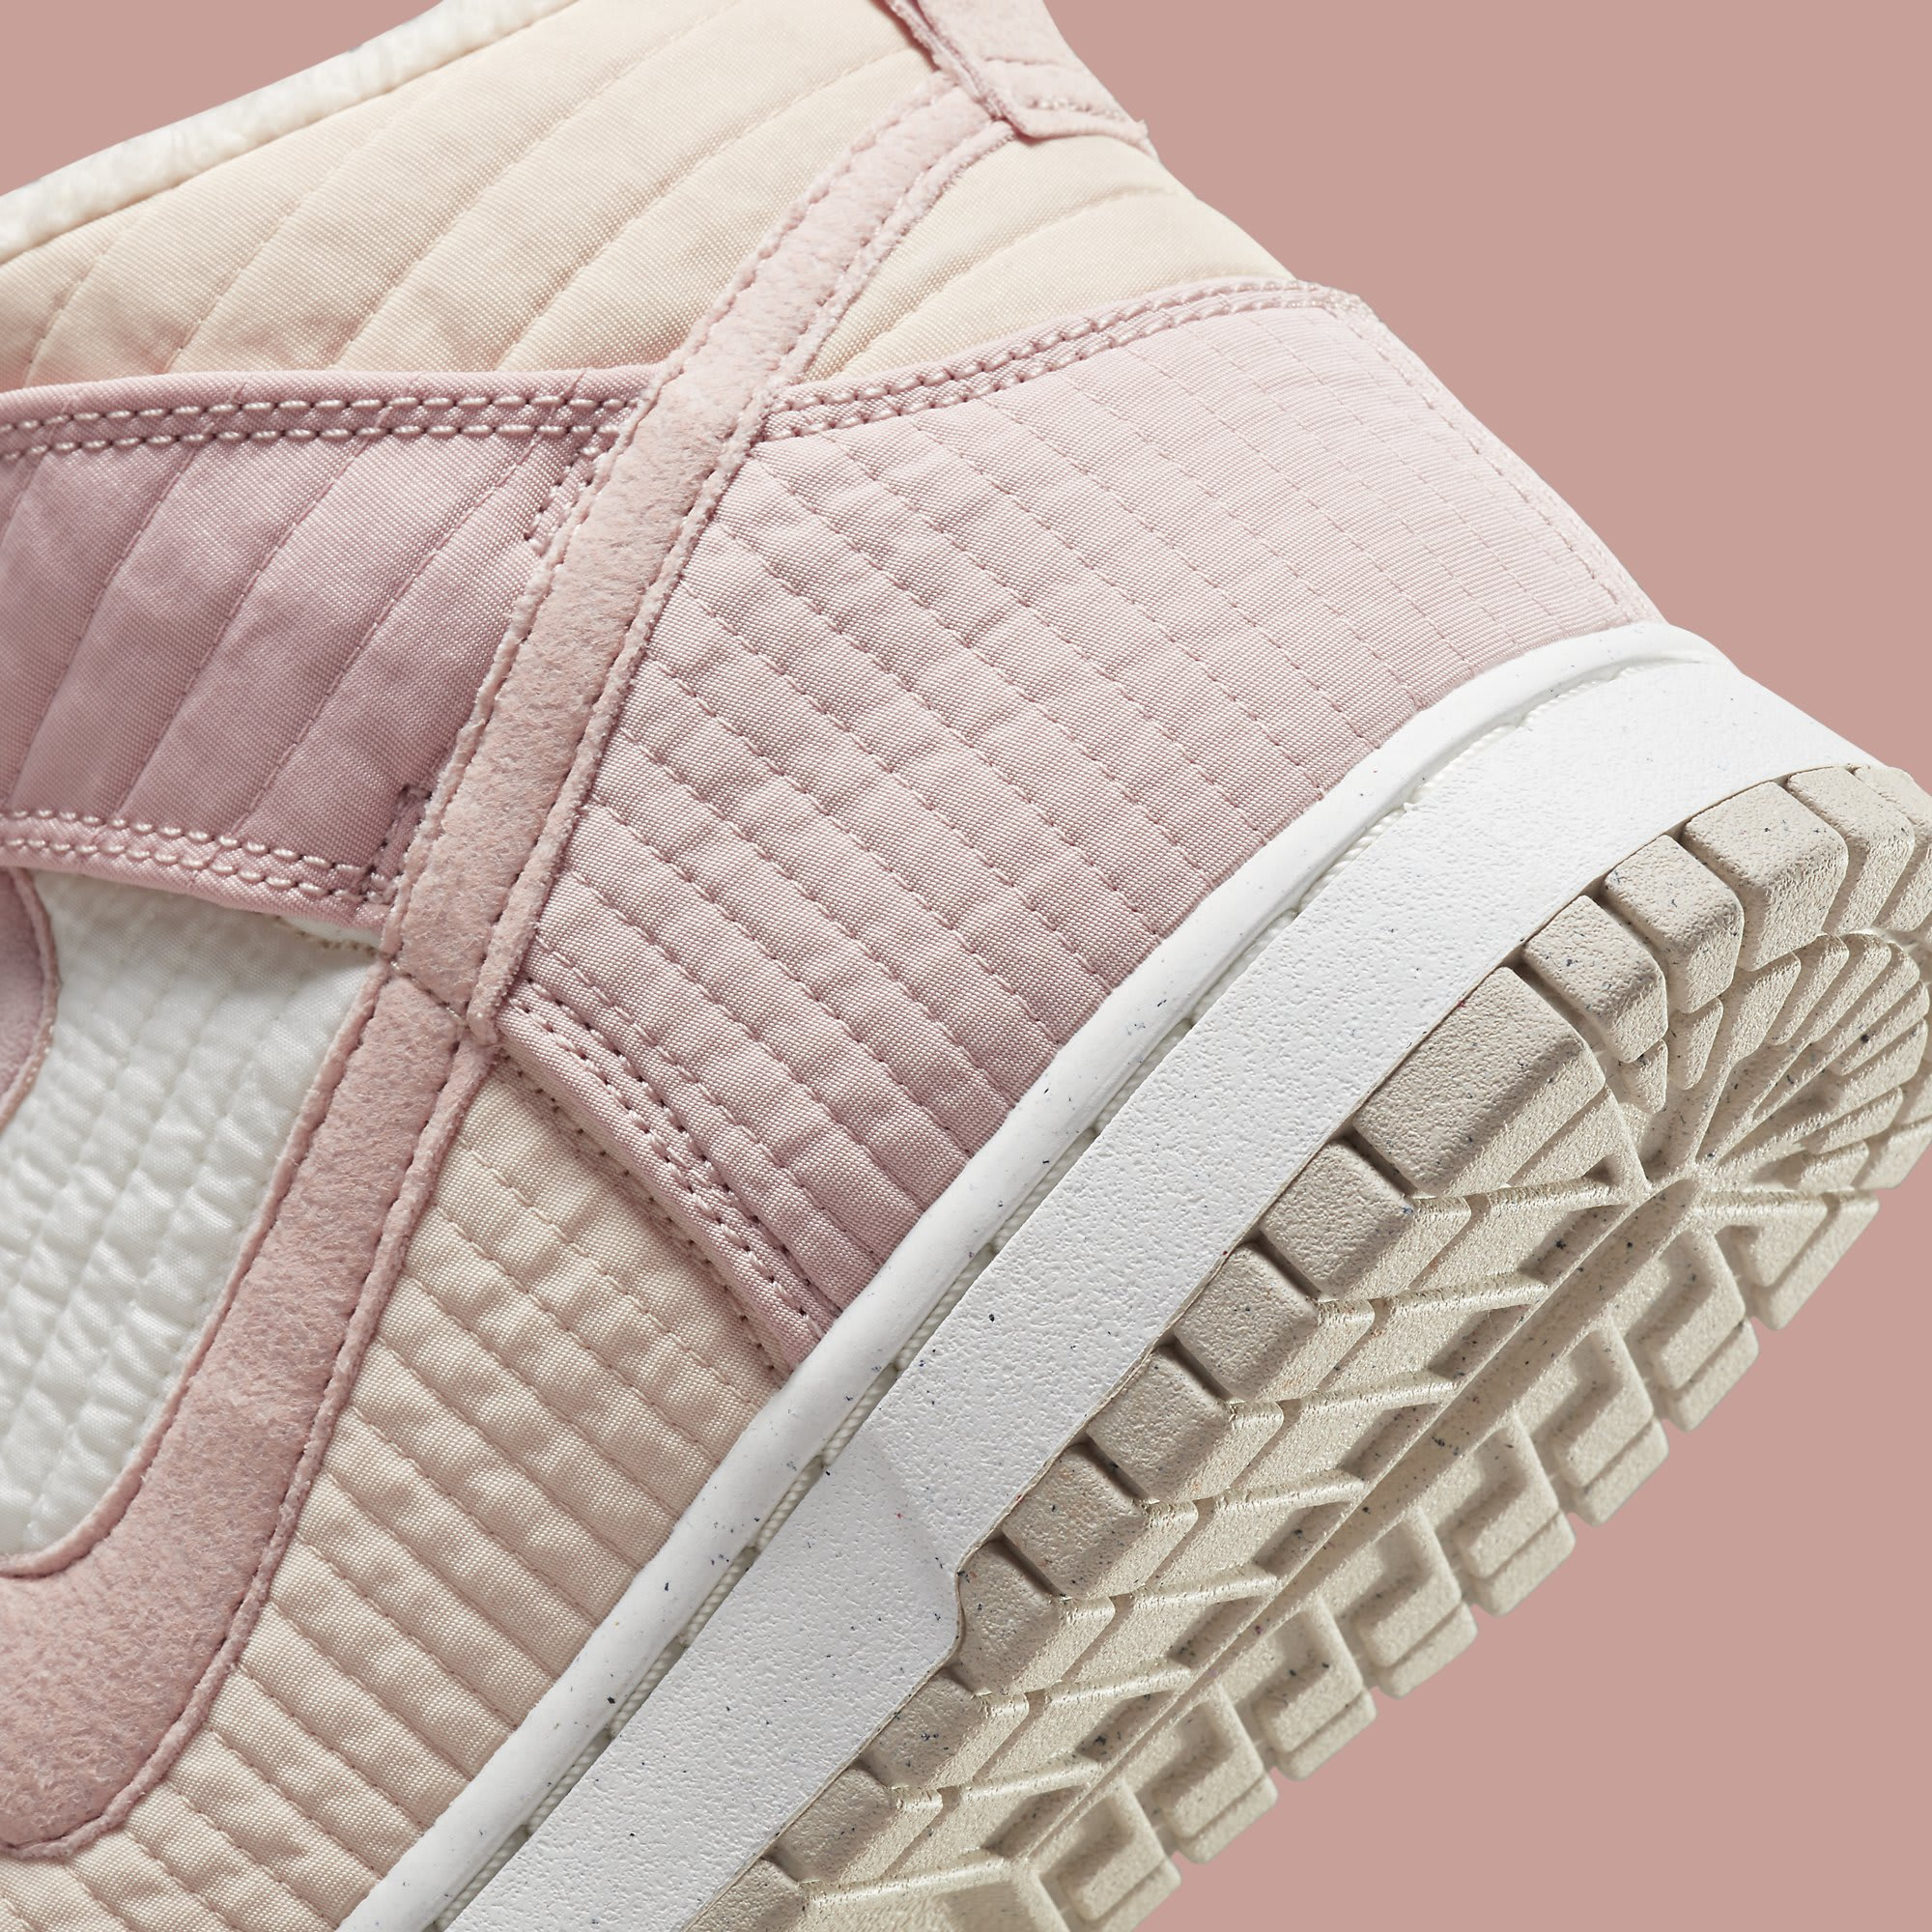 Nike Dunk High Toasty Pink DN9909-200 Release Date Heel Detail